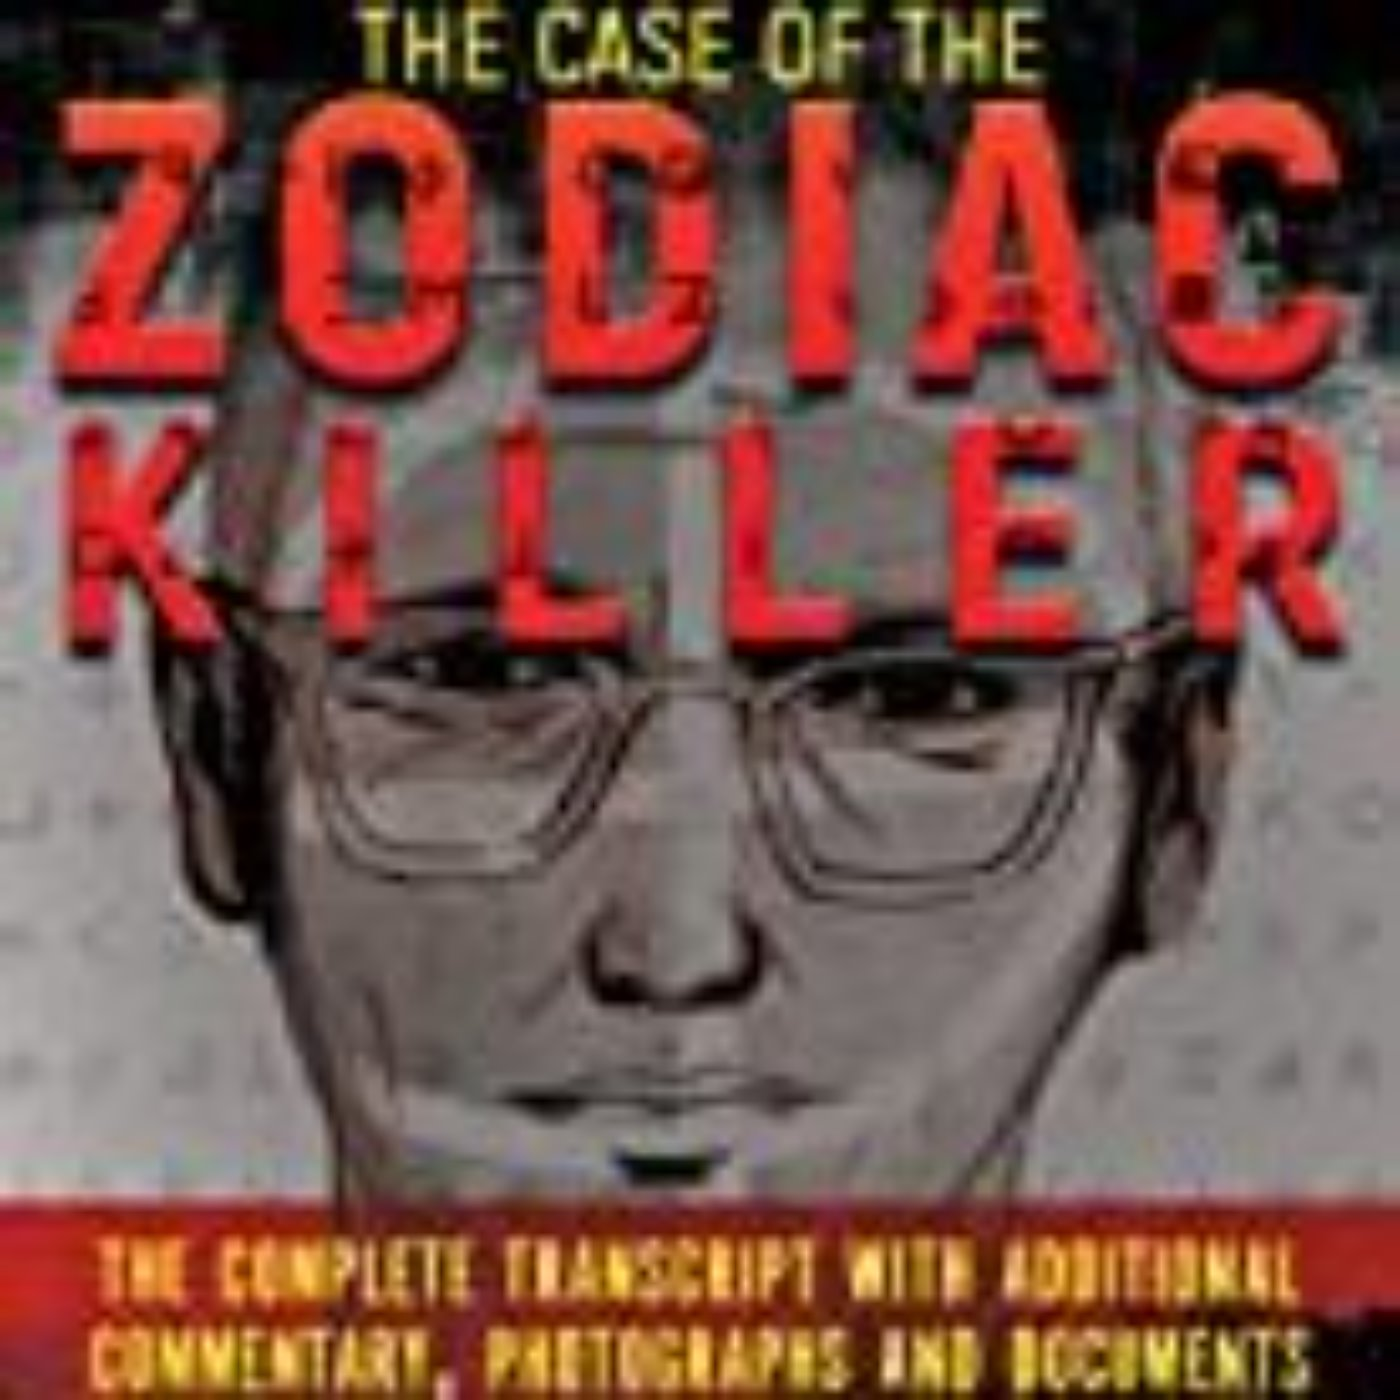 CASE OF THE ZODIAC - CRIMINOLOGY PODCAST TRANSCRIPTS - MIKE MORFORD